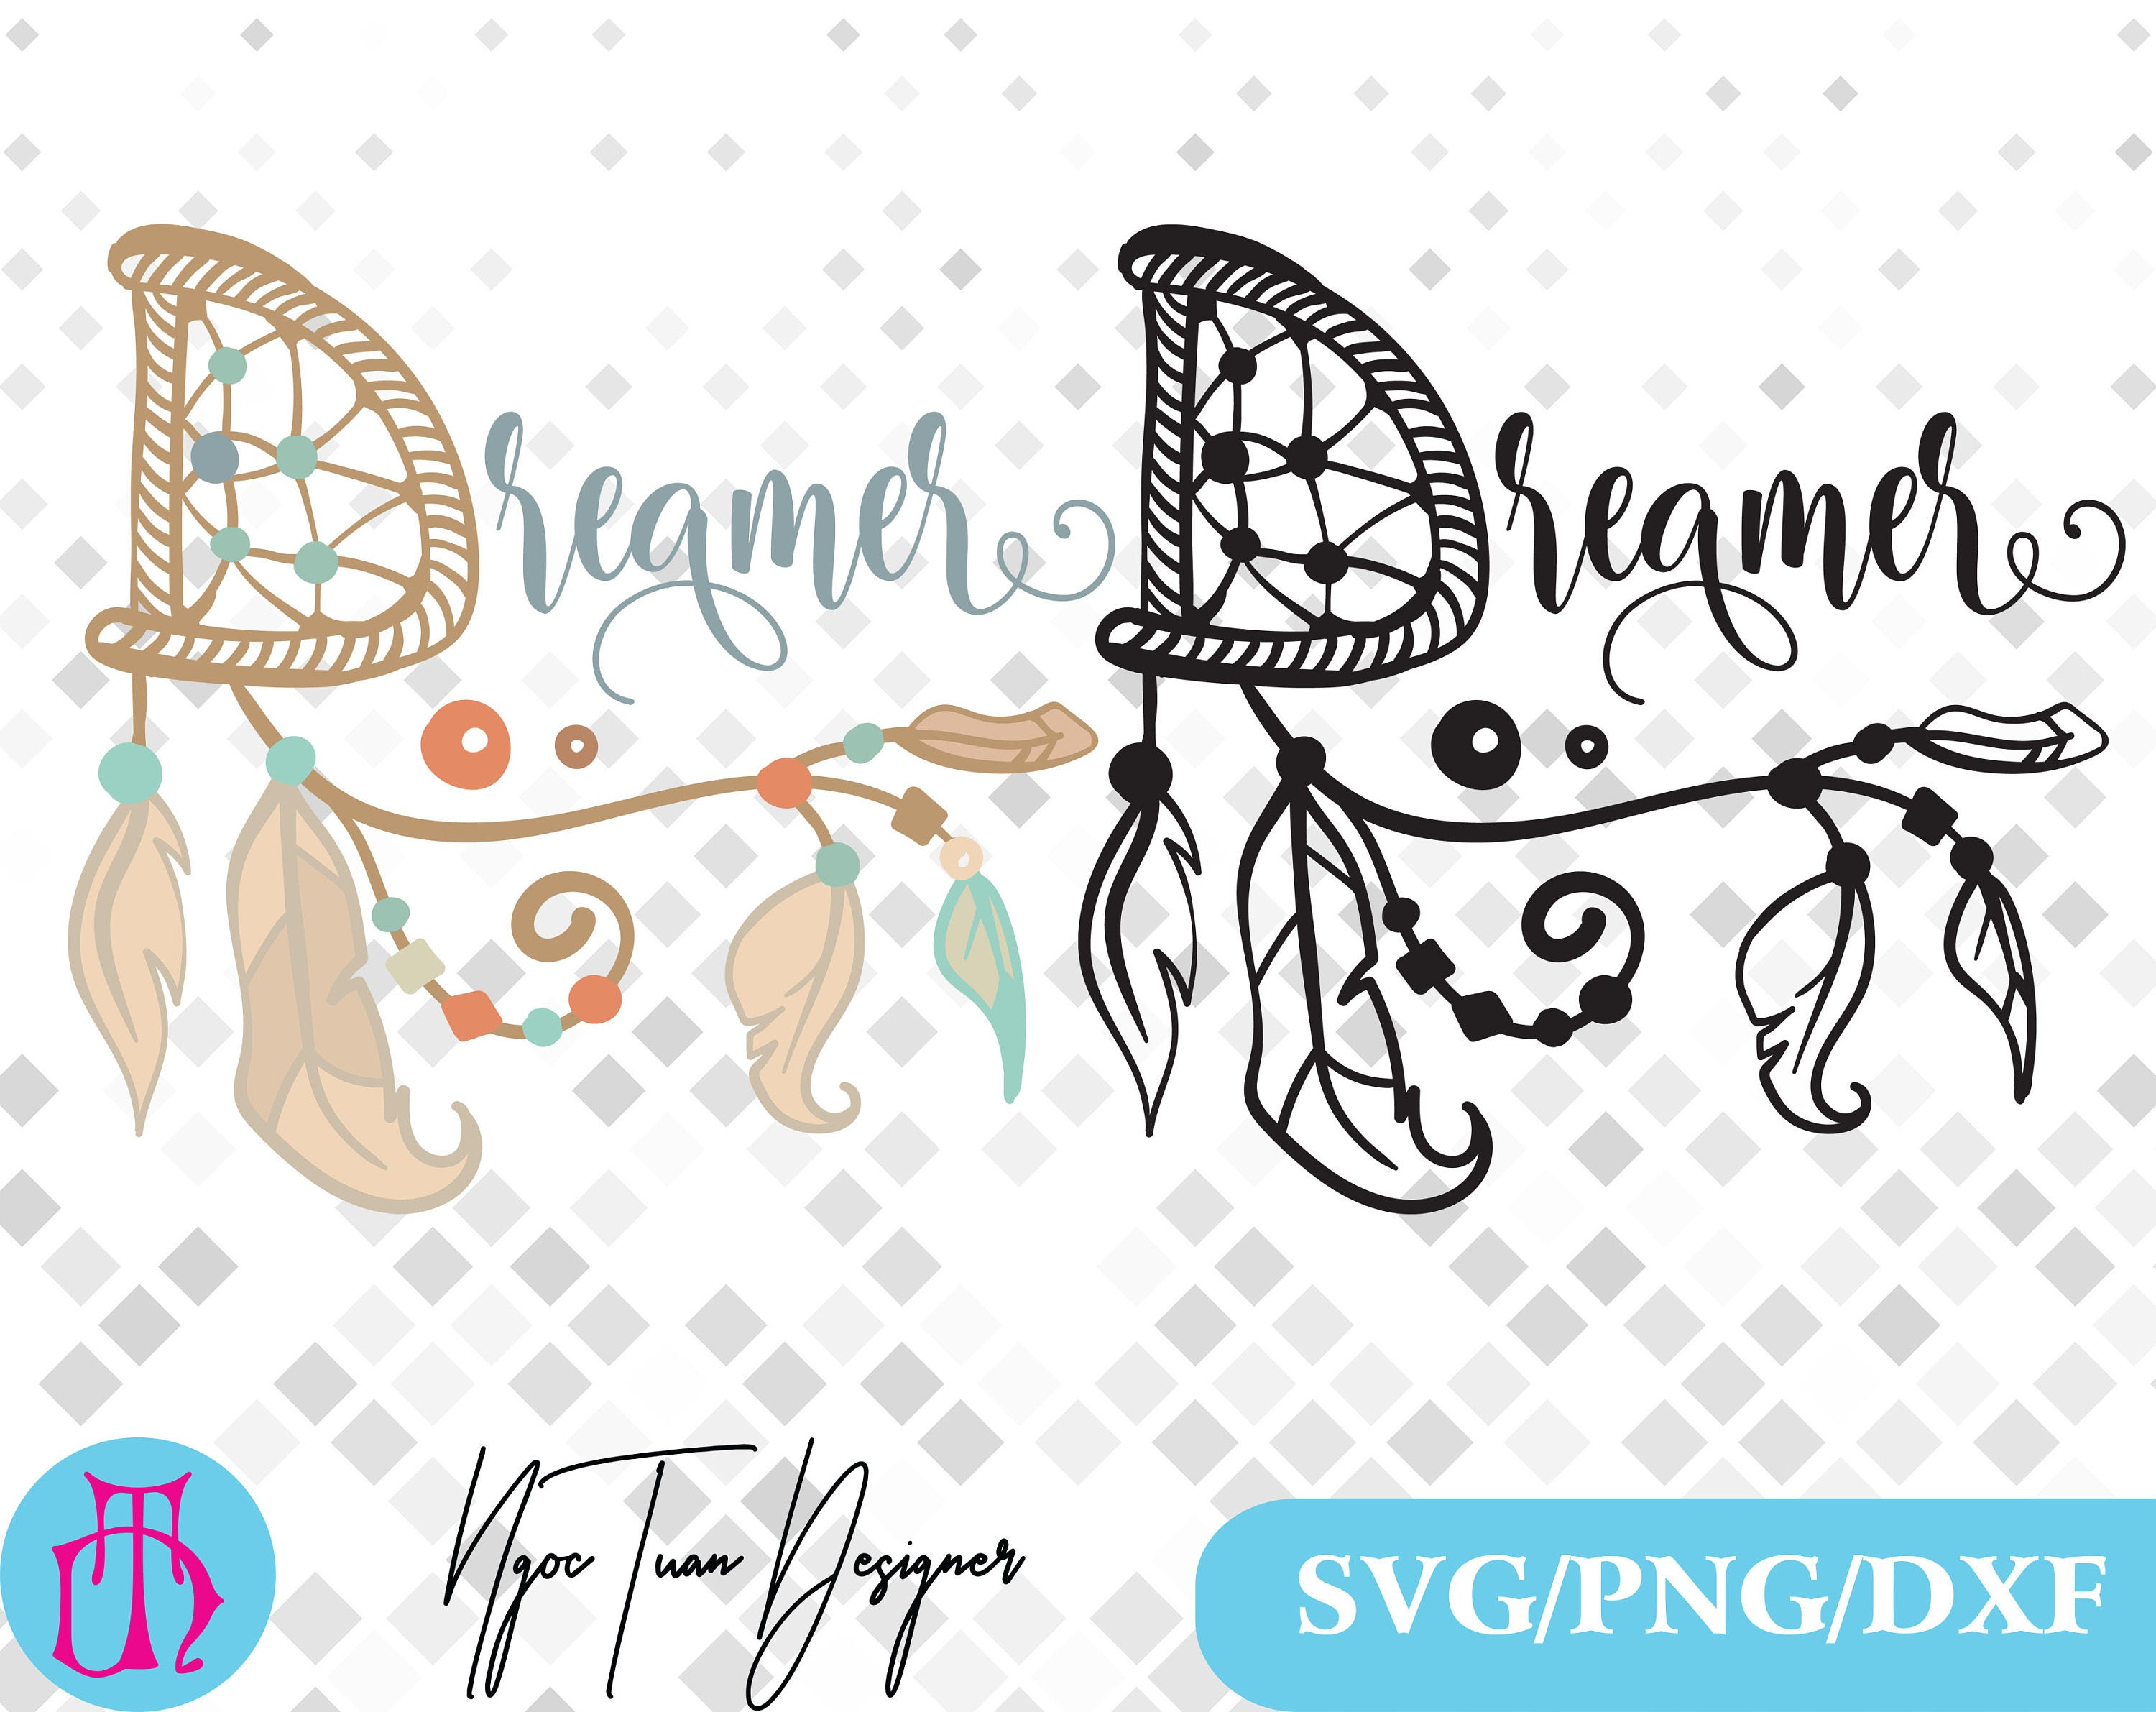 Boho svg,png,dxf / dreamer svg/ dreamer clipart for  Print,Design,Silhouette,Cricut and any more.